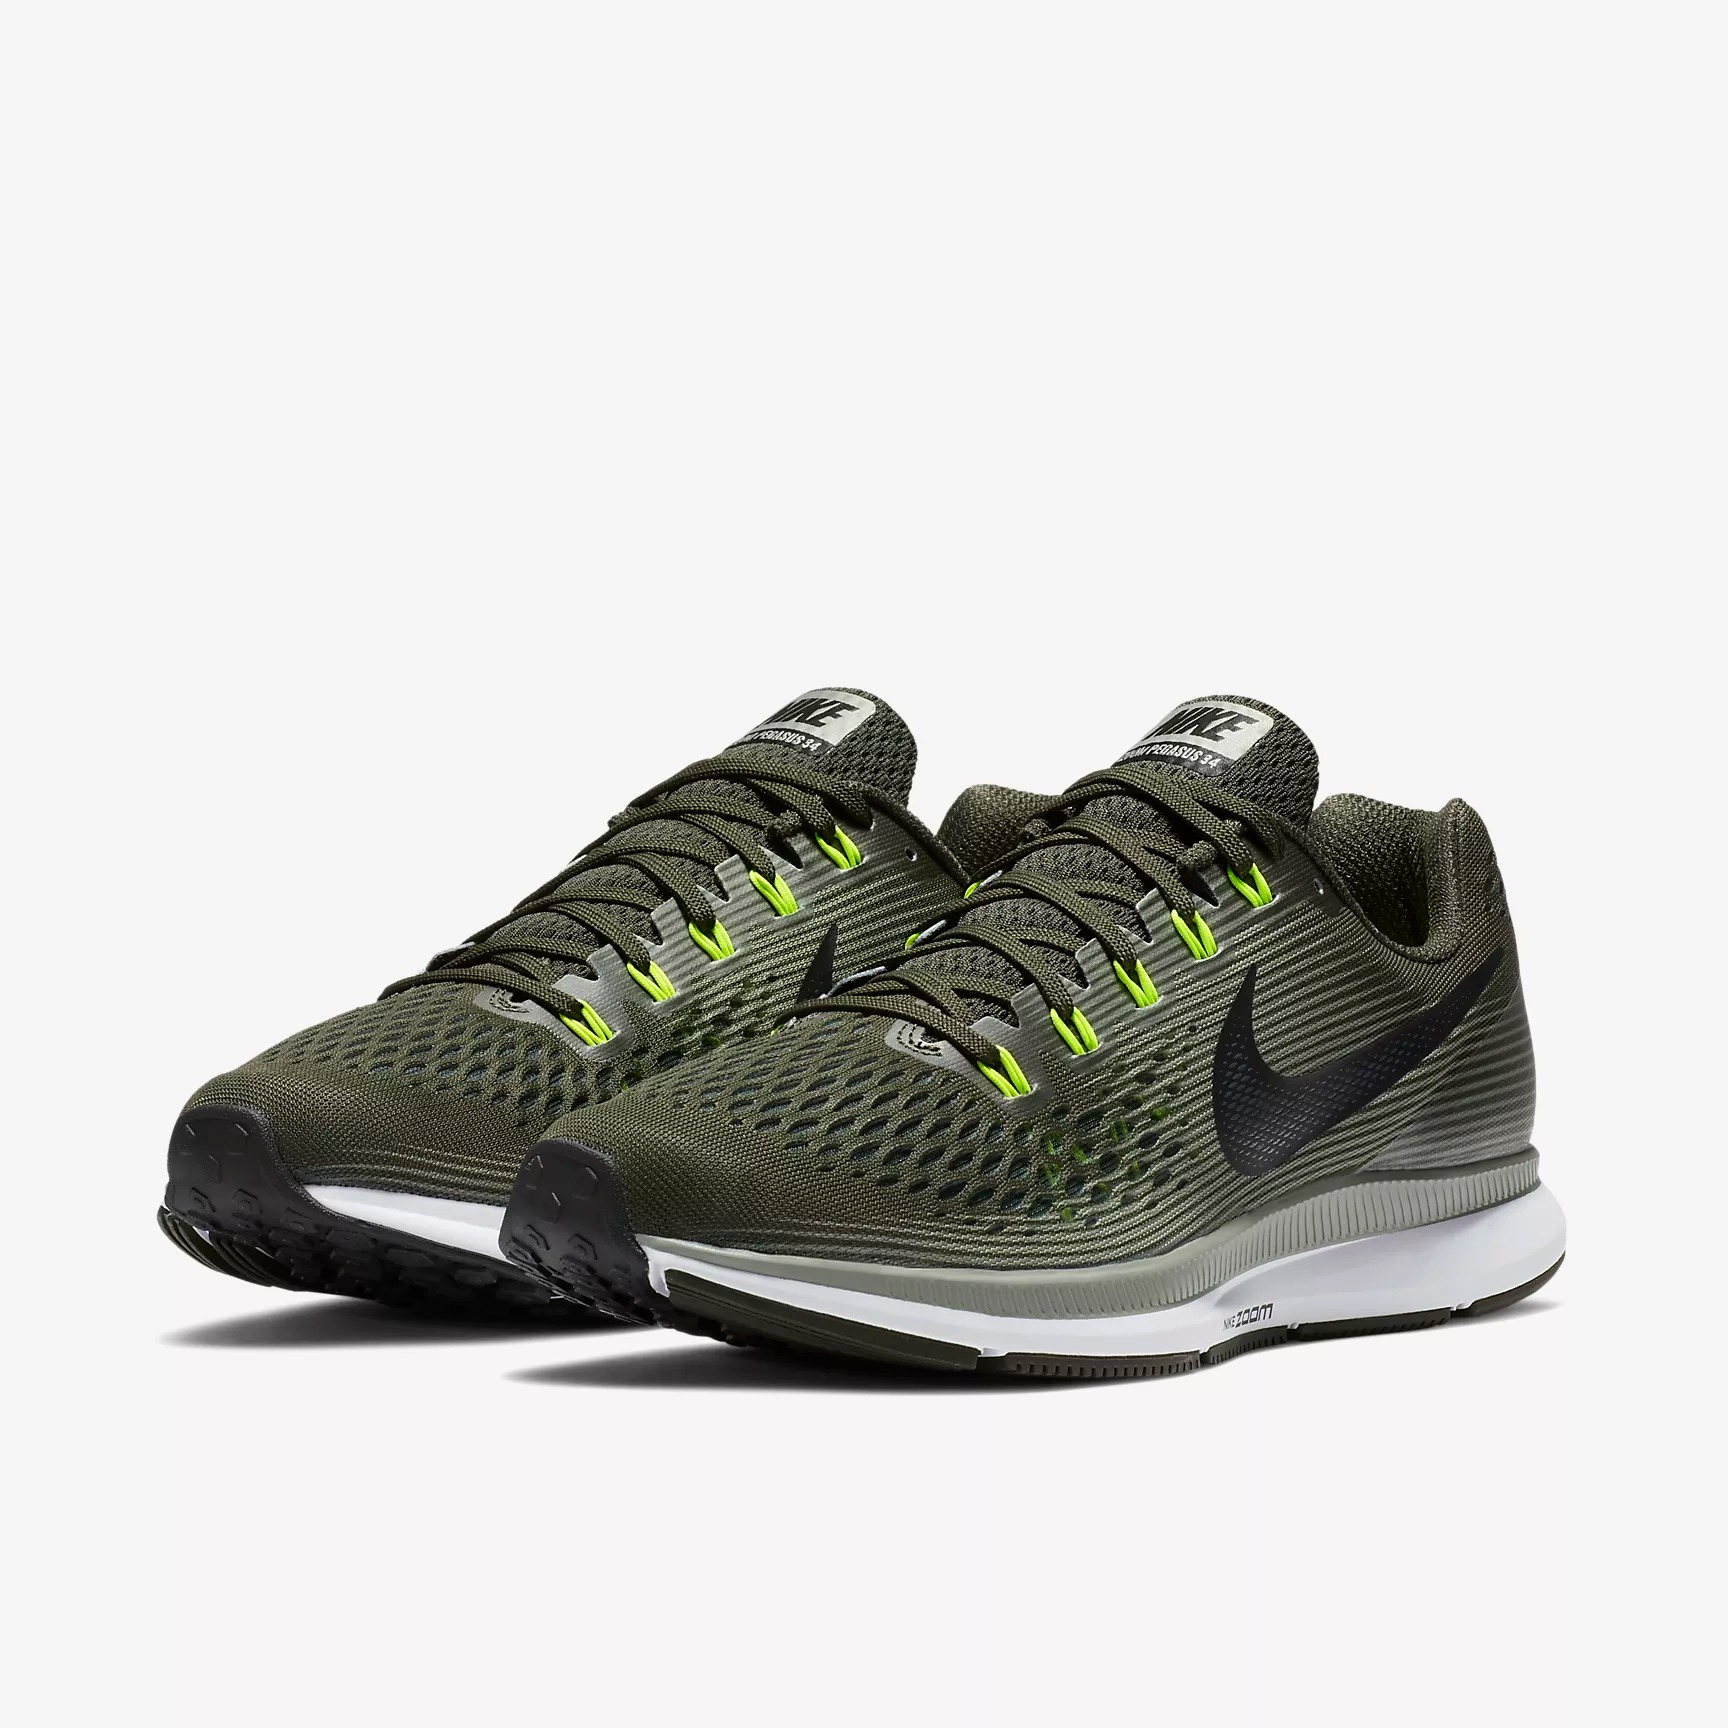 8bd182574518 Nike Air Zoom Pegasus 34 Running Shoes - SPORT SHOES RUNNING SHOES -  Superfanas.lt